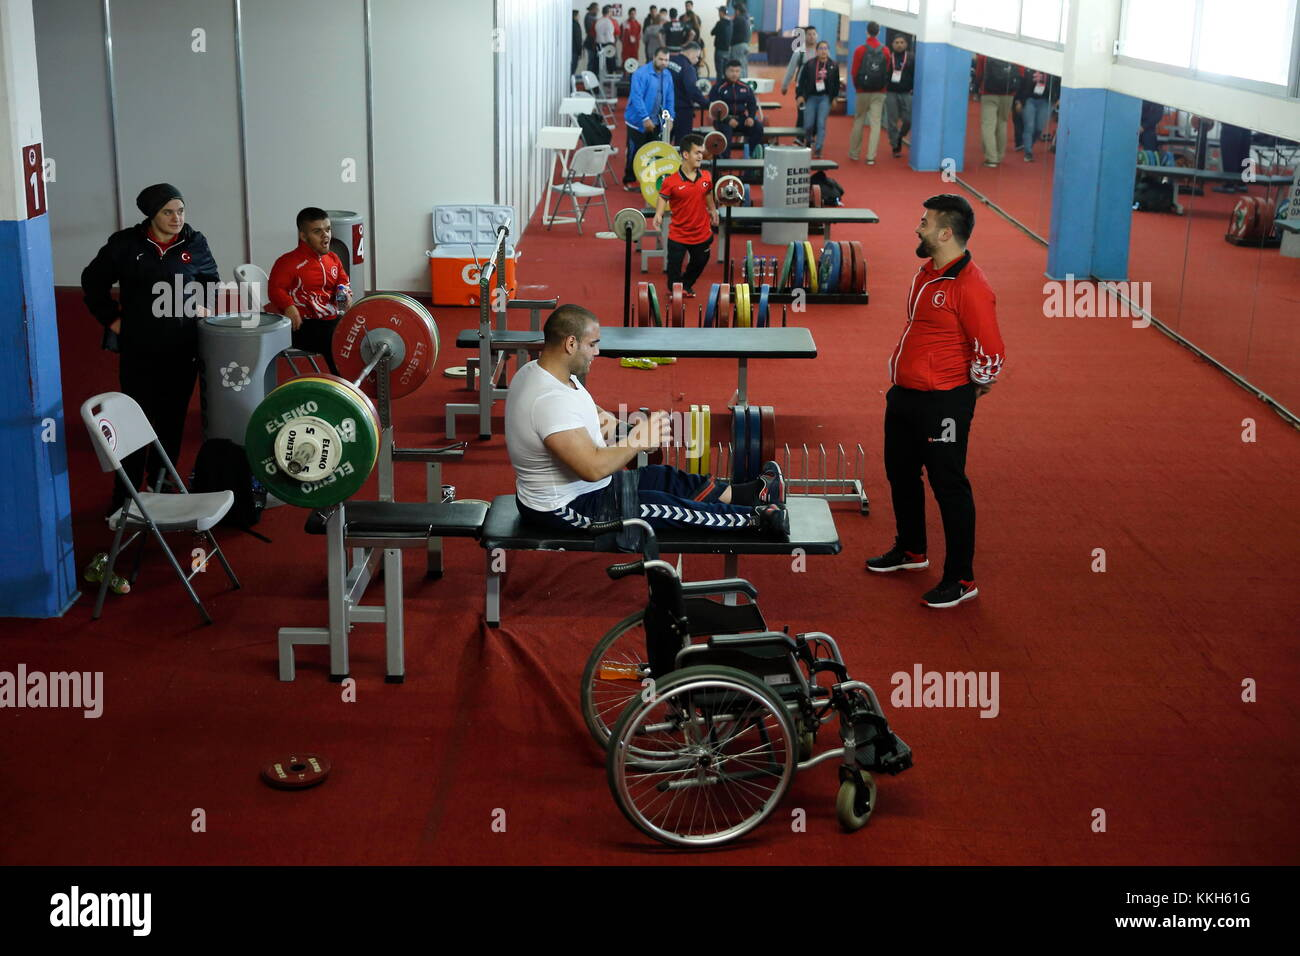 Taoying Fu 4 Paralympic medals in powerlifting Taoying Fu 4 Paralympic medals in powerlifting new pics